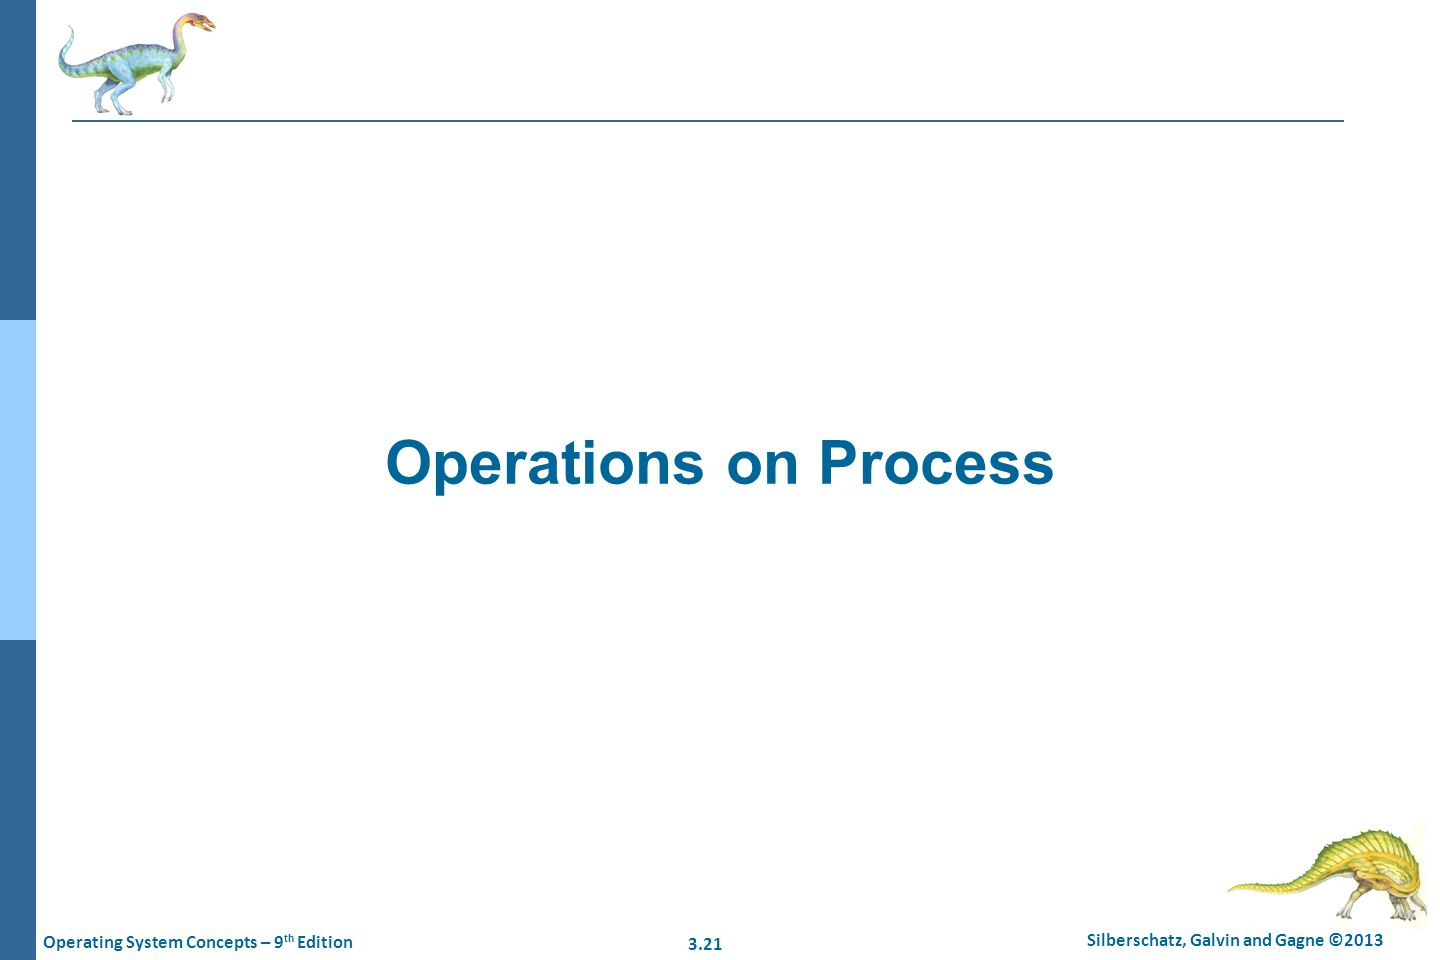 Operations on Process